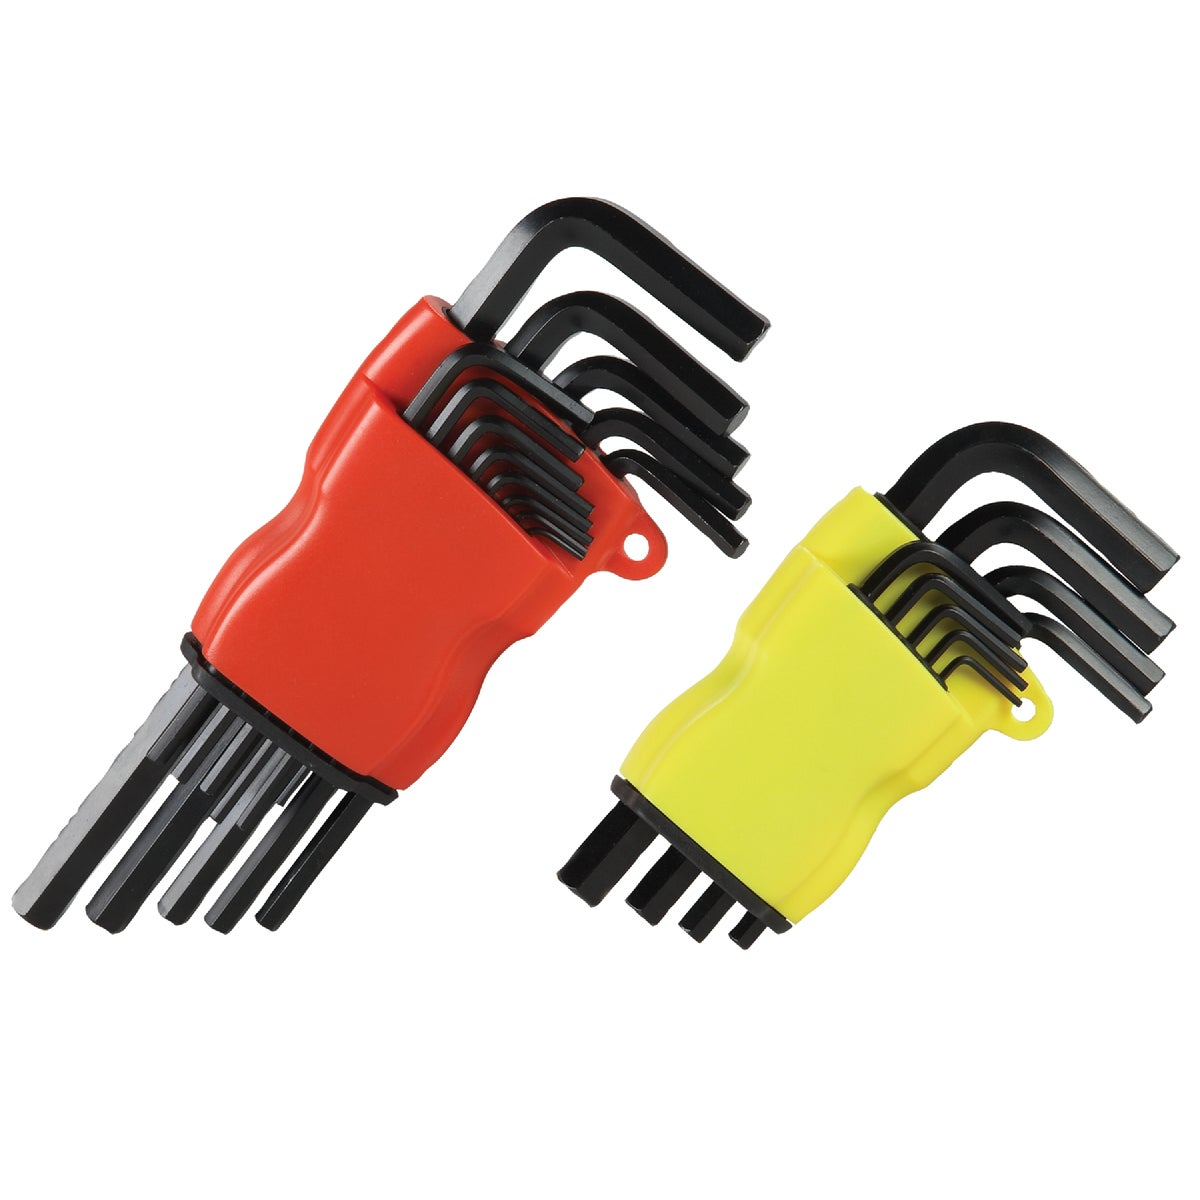 Do it 22-Piece Hex Key Set